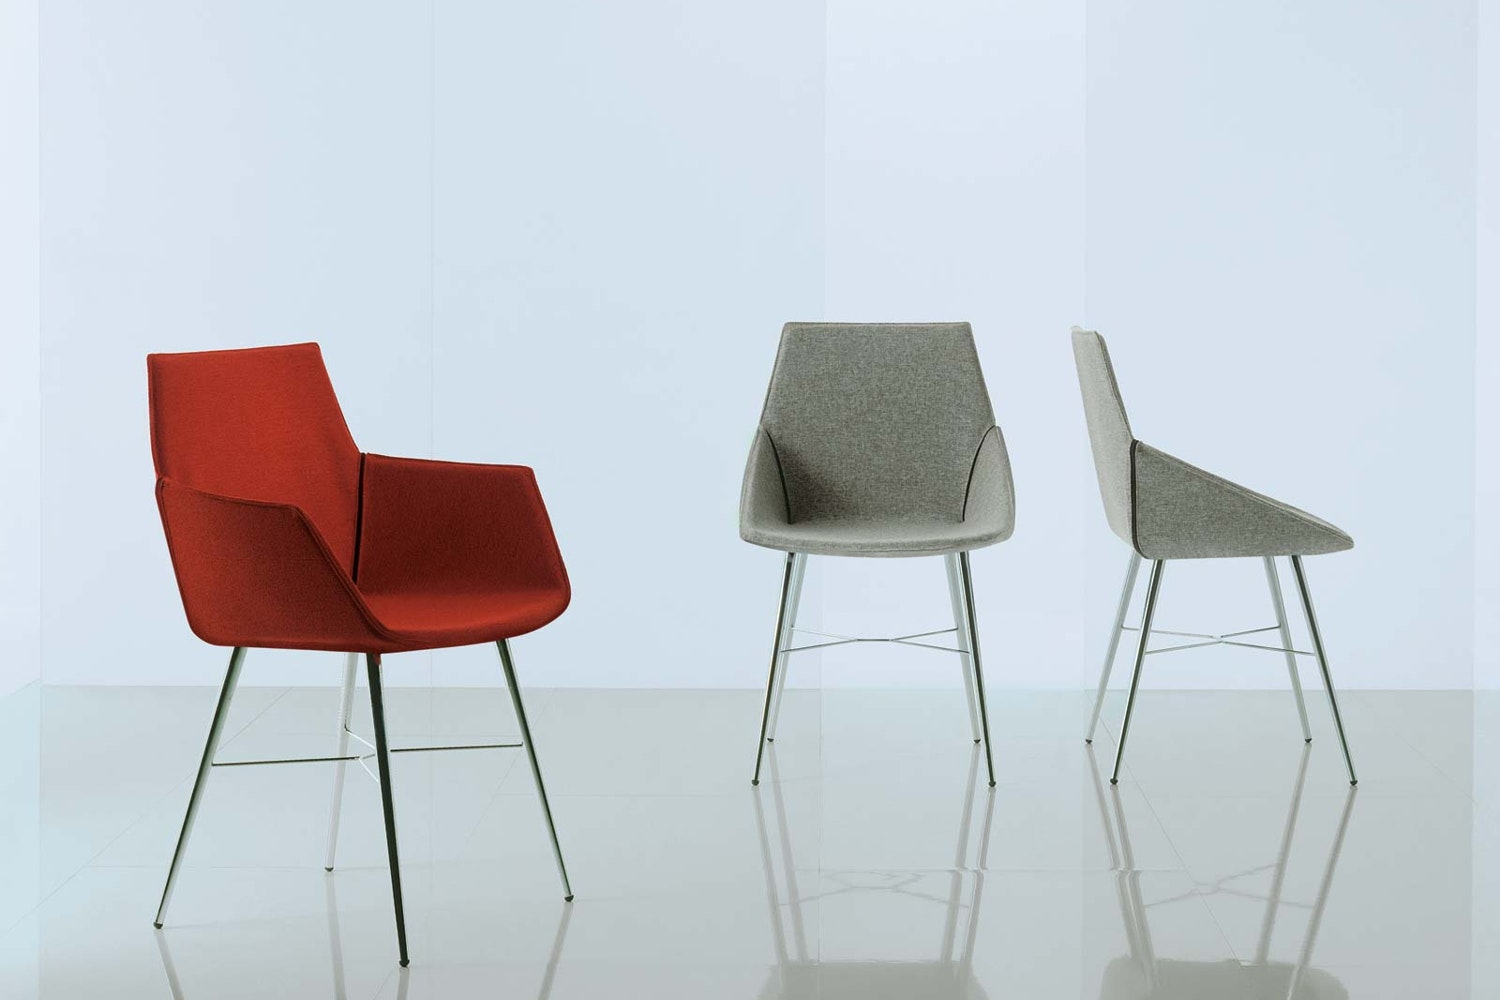 Seltz Chair by Jehs + Laub for Acerbis